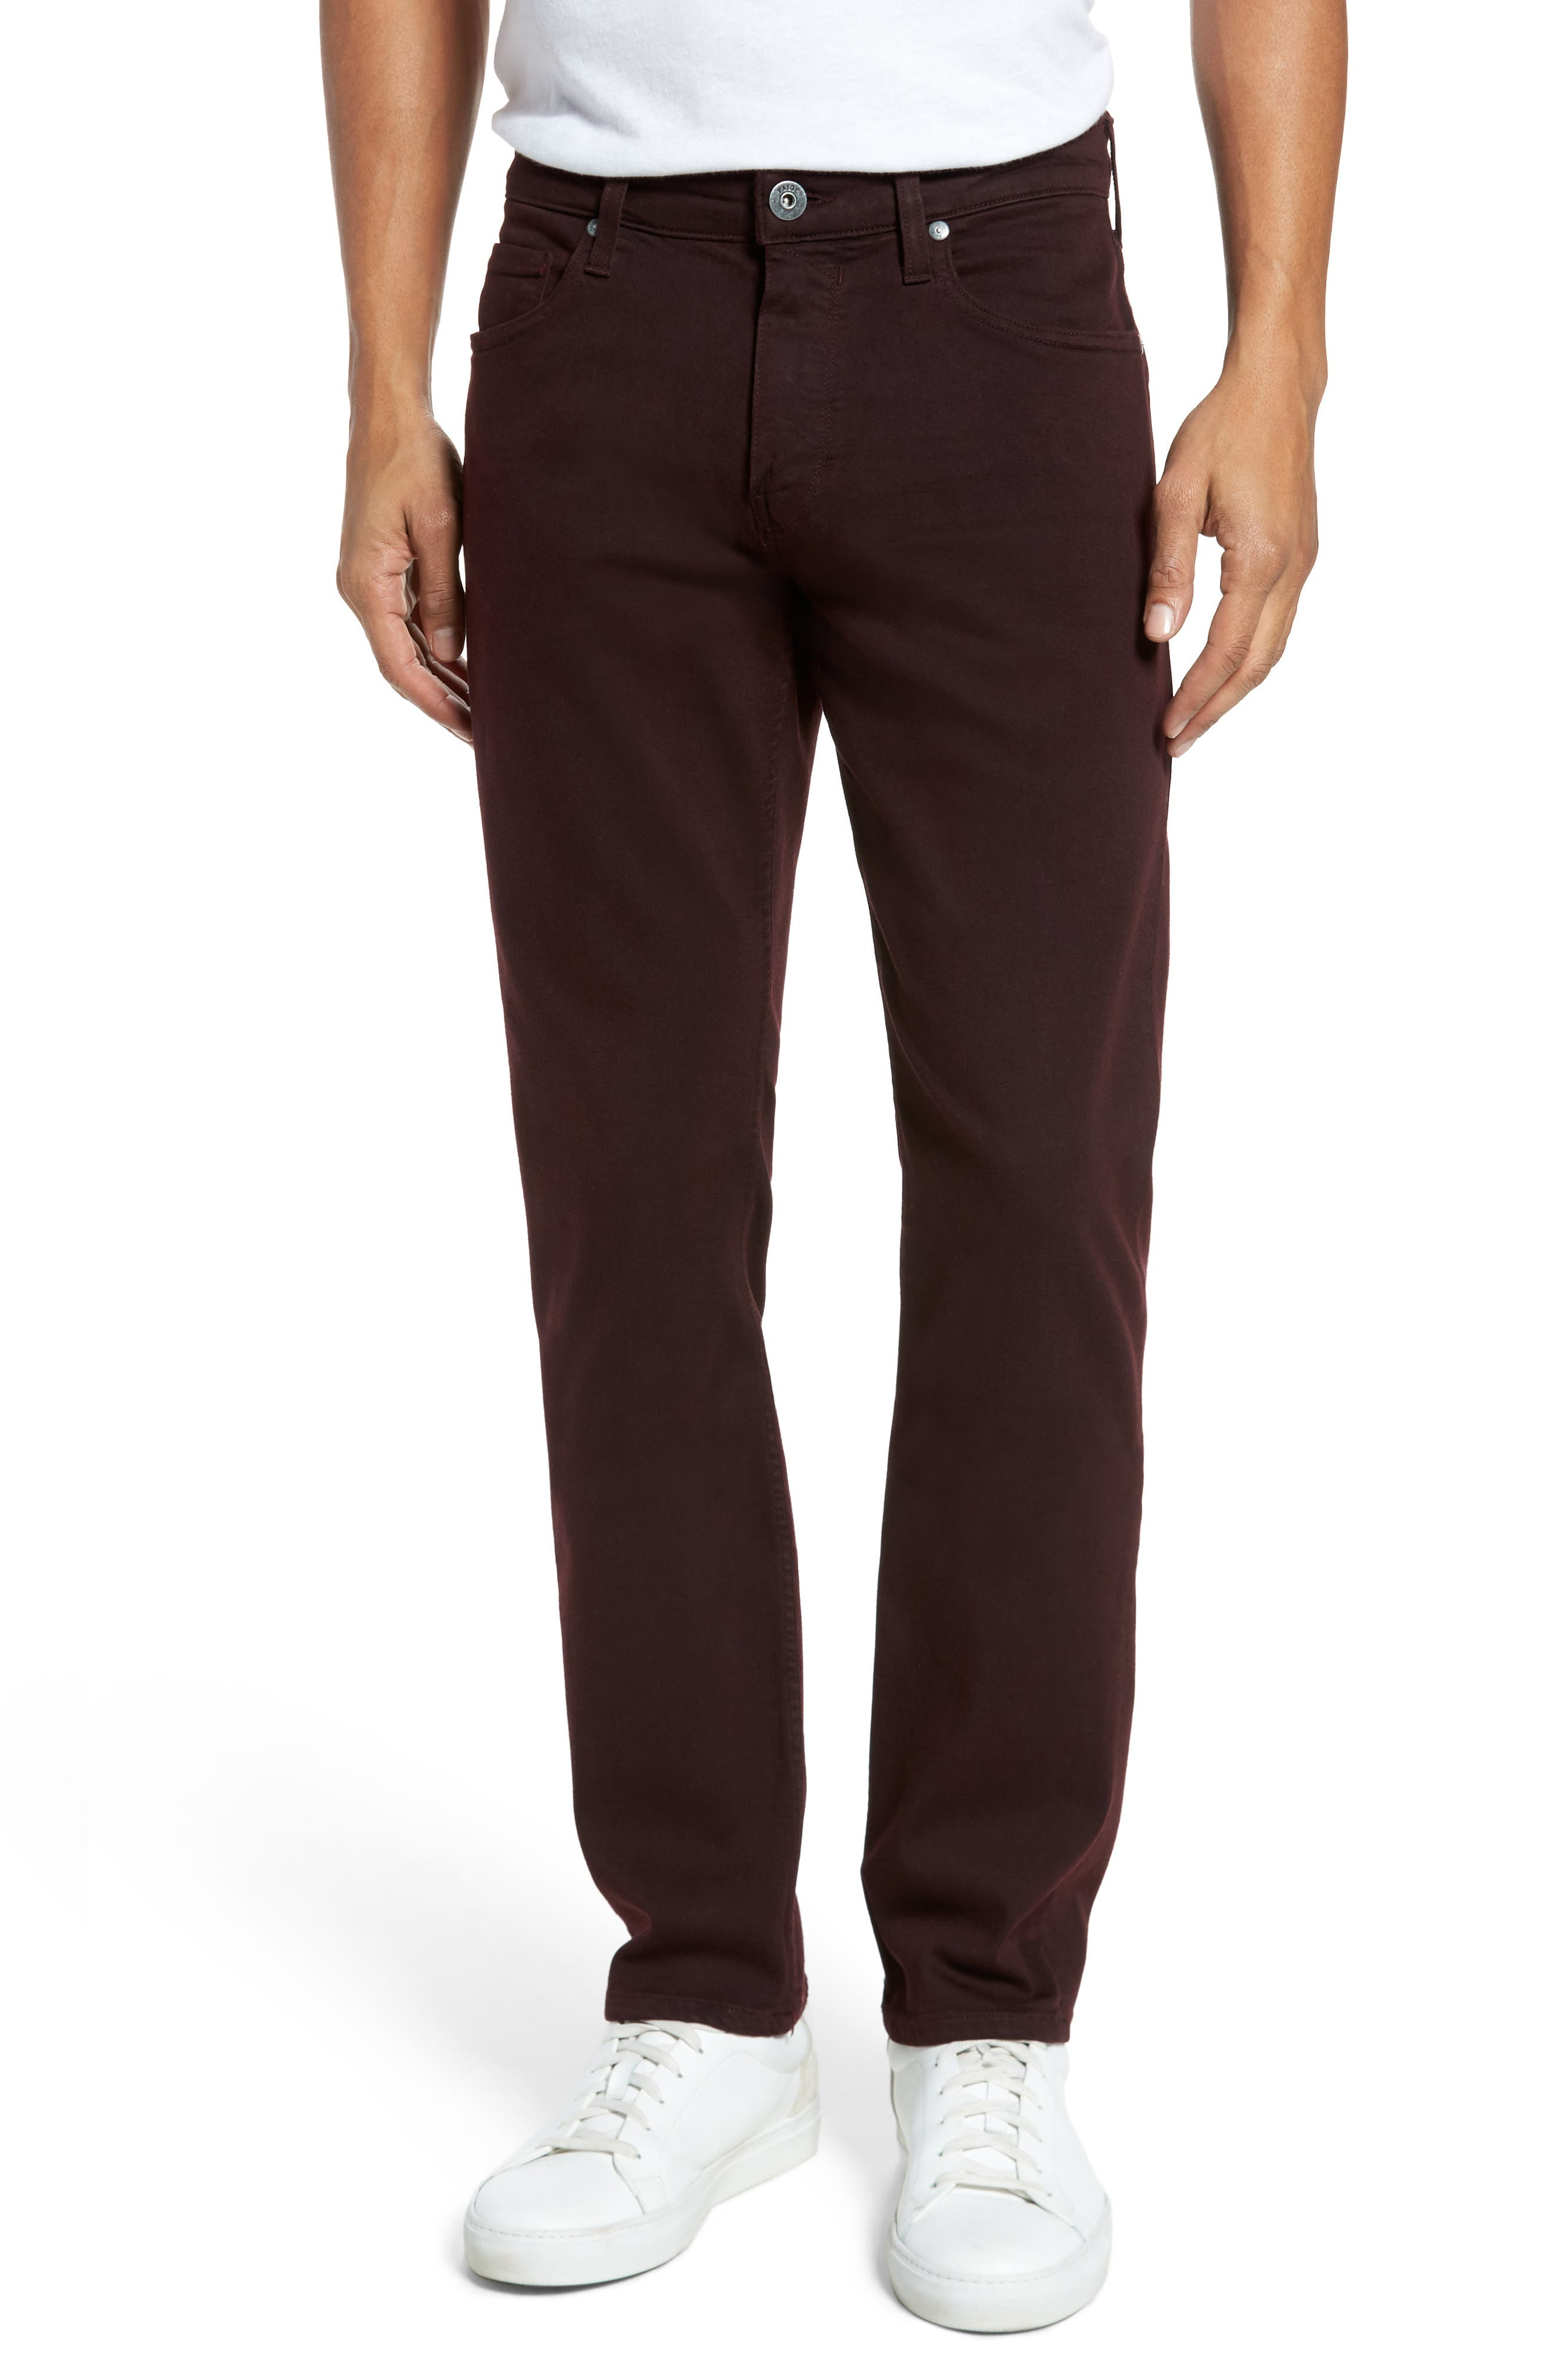 Transcend - Federal Slim Straight Fit Jeans,                         Main,                         color,